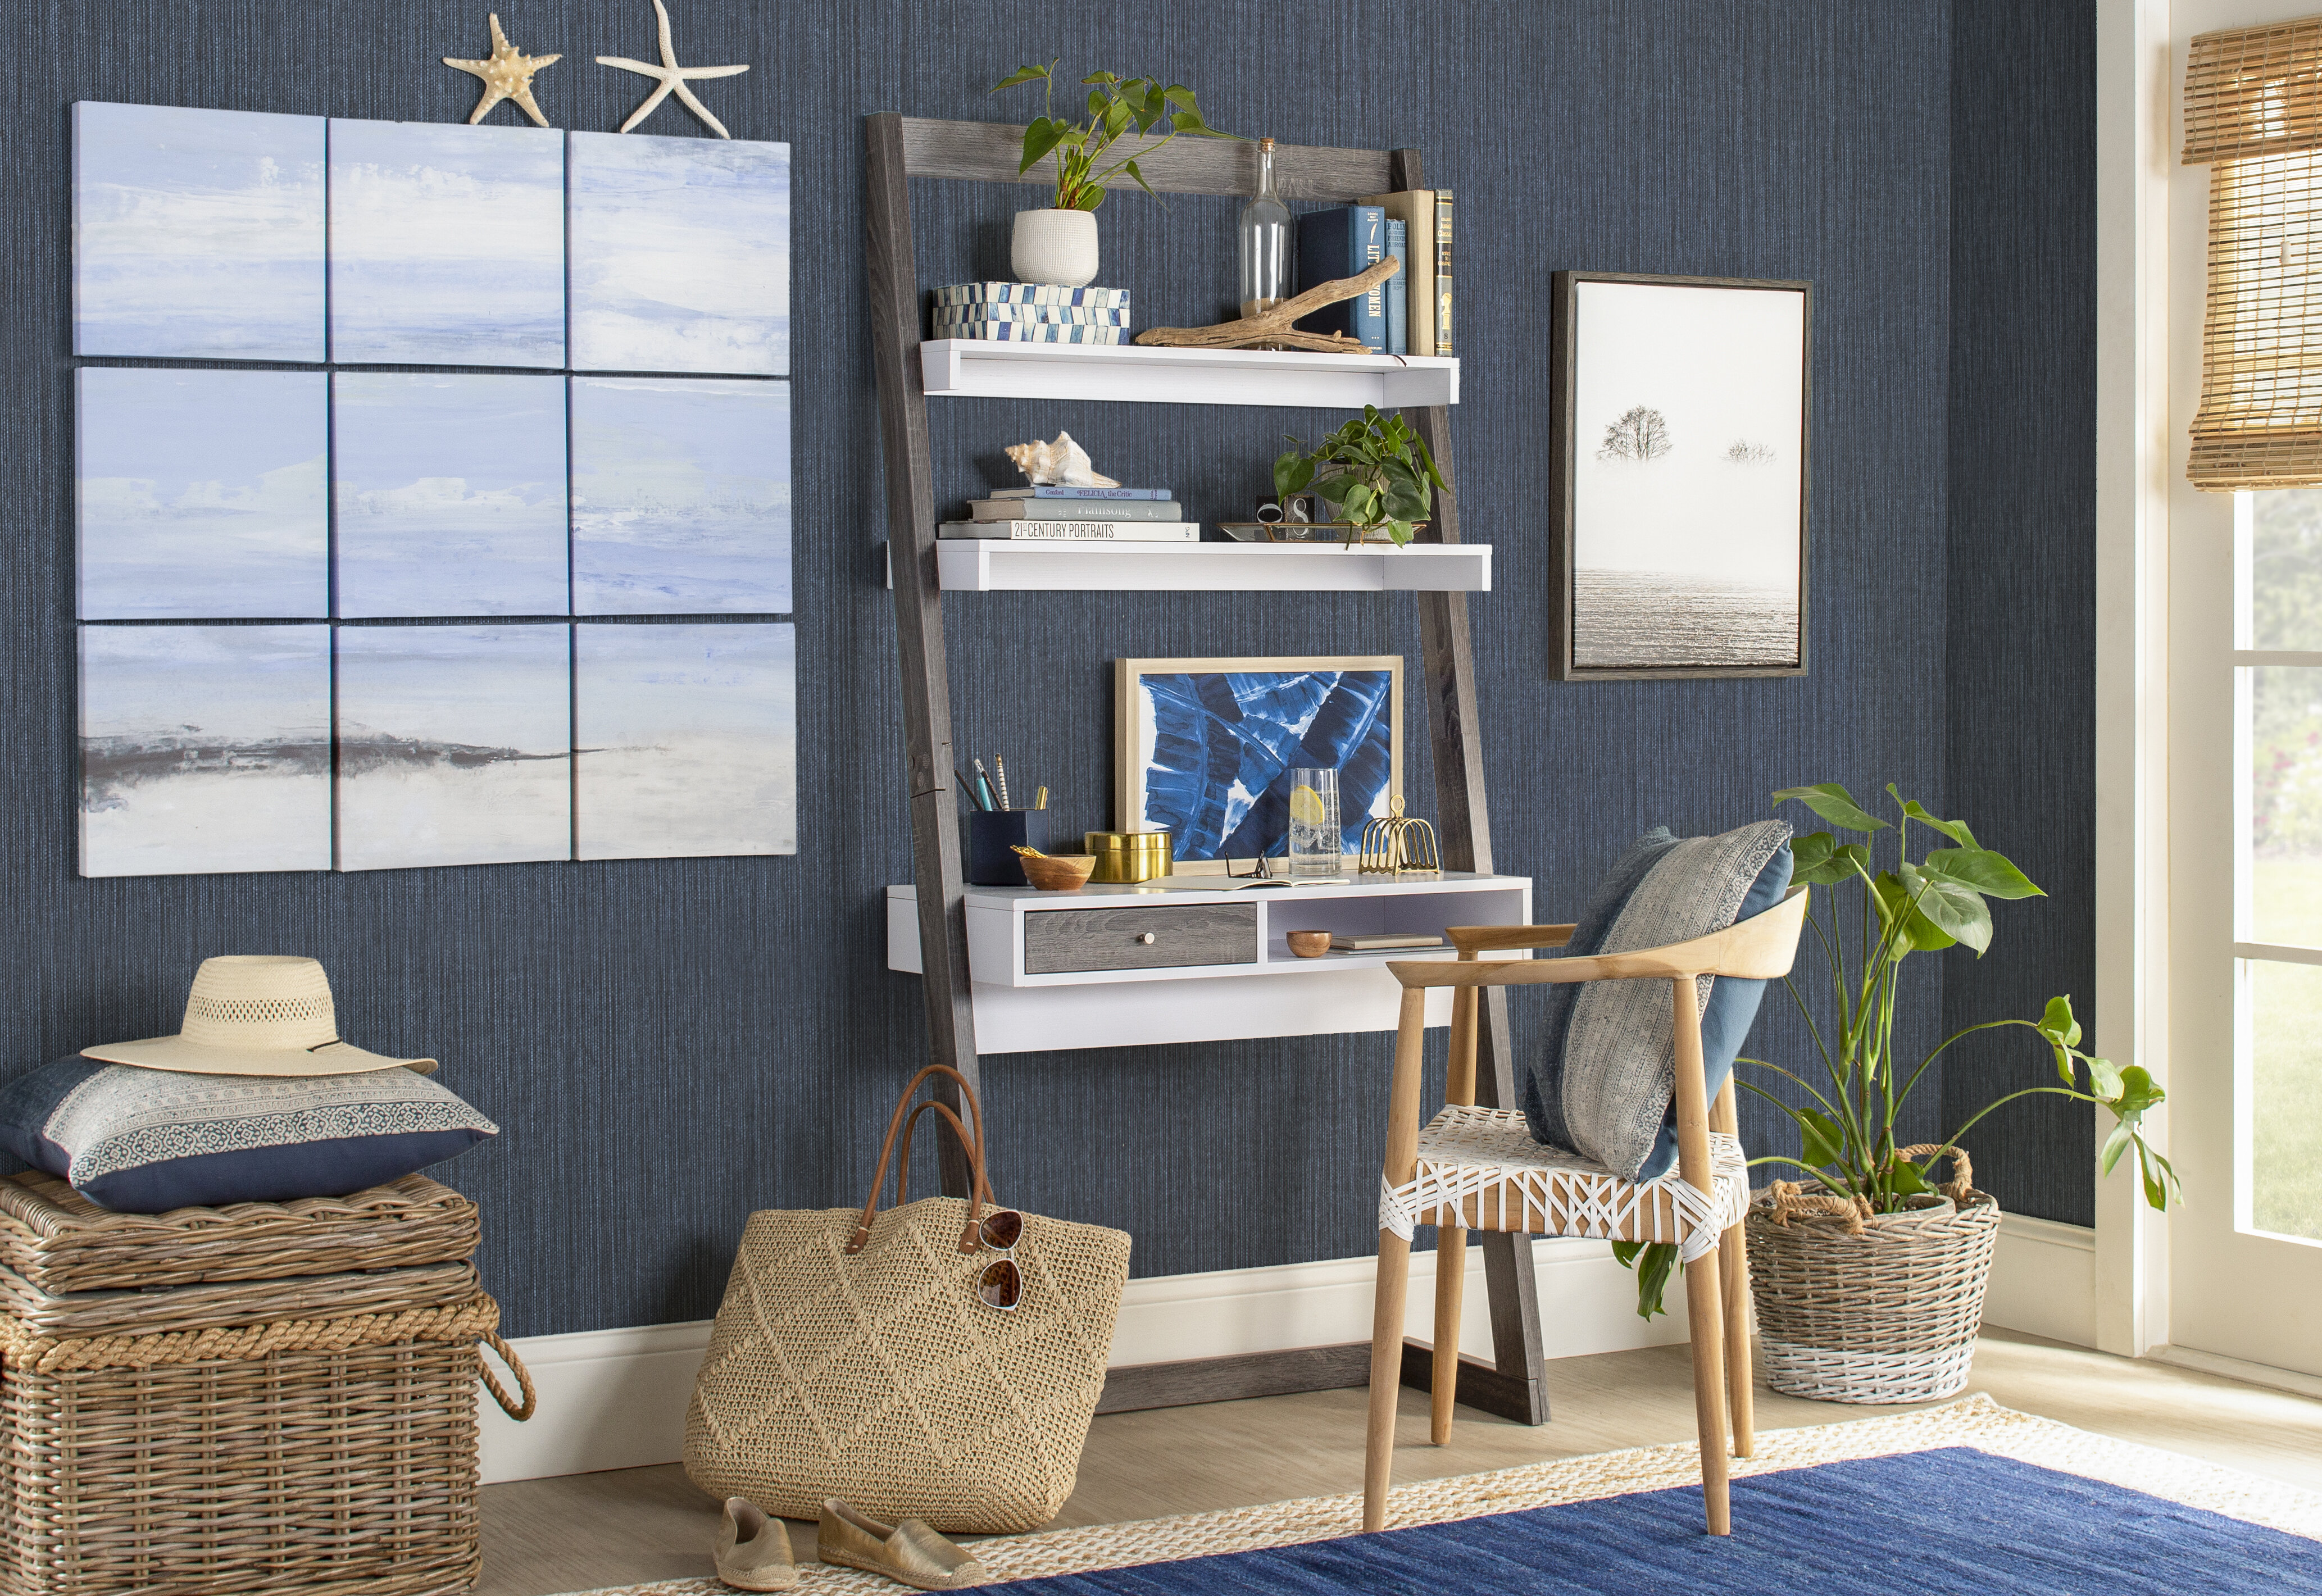 29 Home Office Ideas to Boost Your Productivity  Wayfair